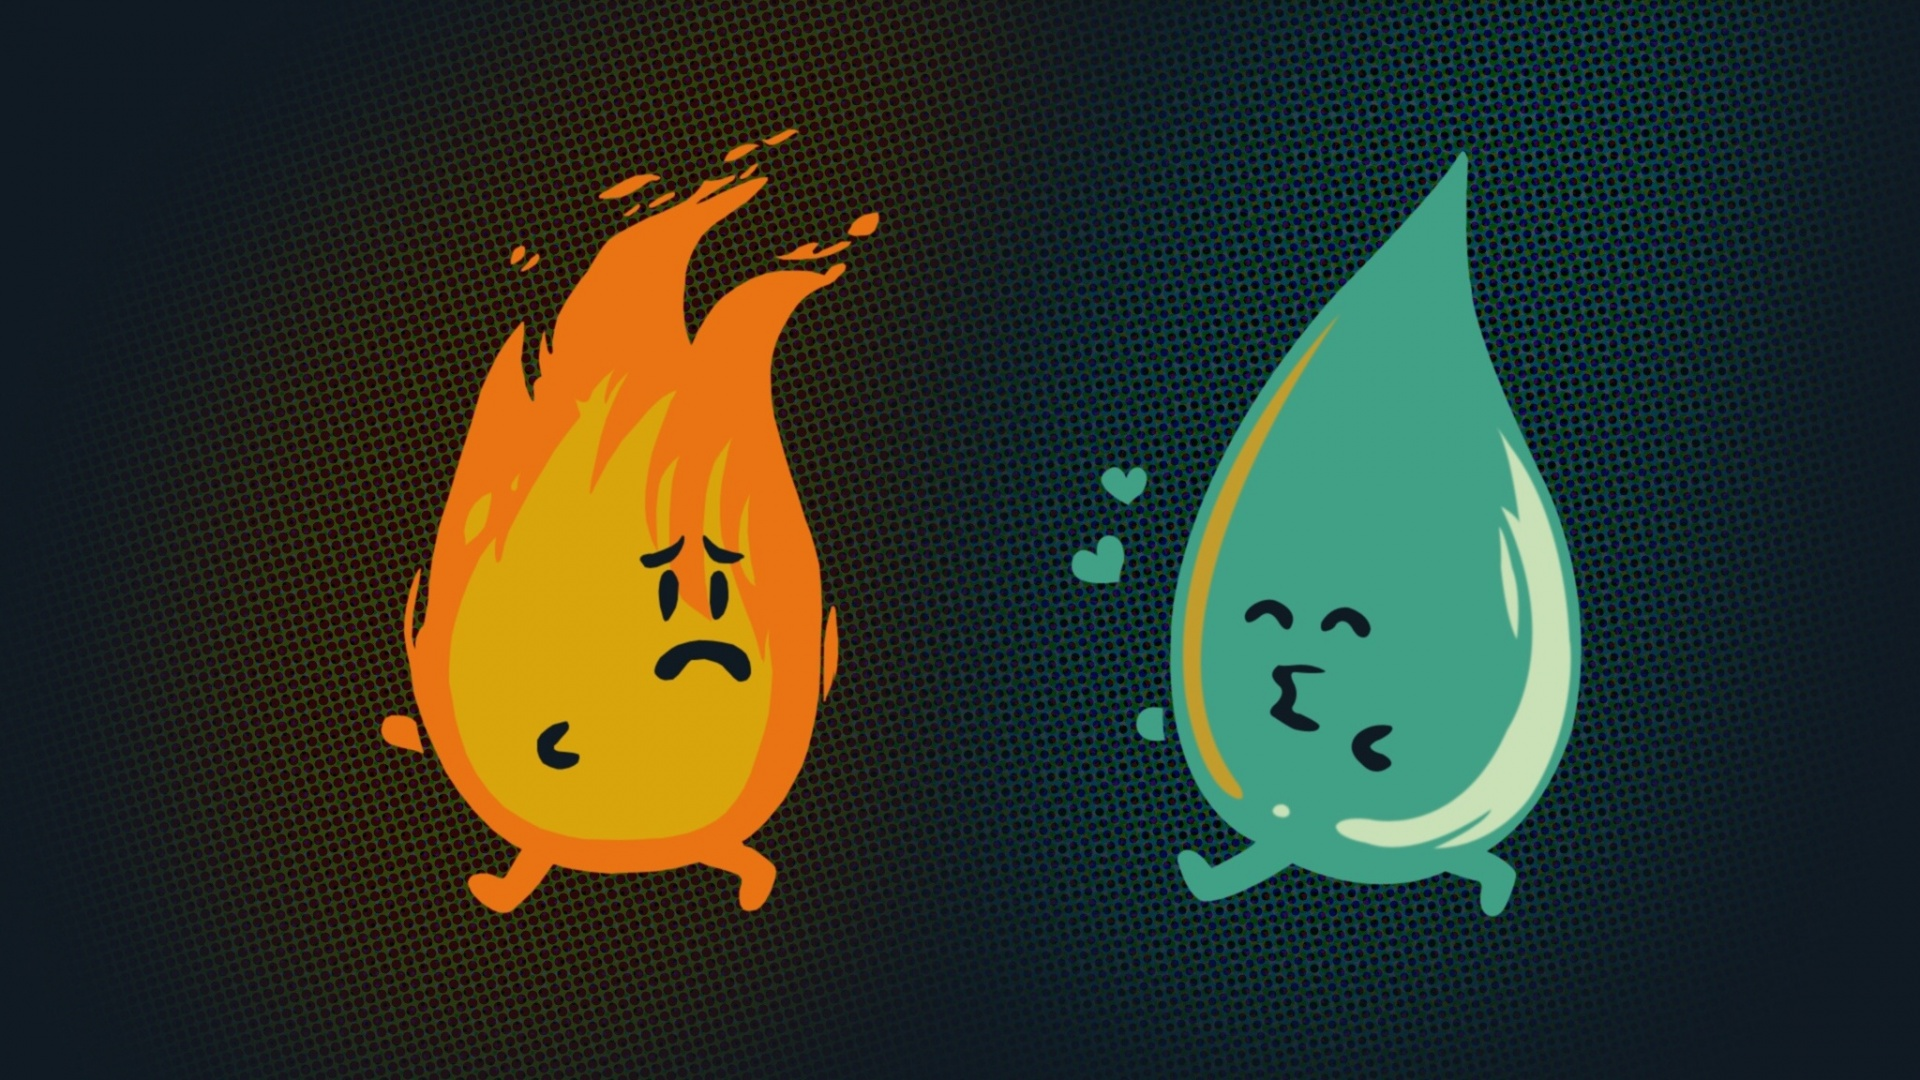 Fire And Water Relationships